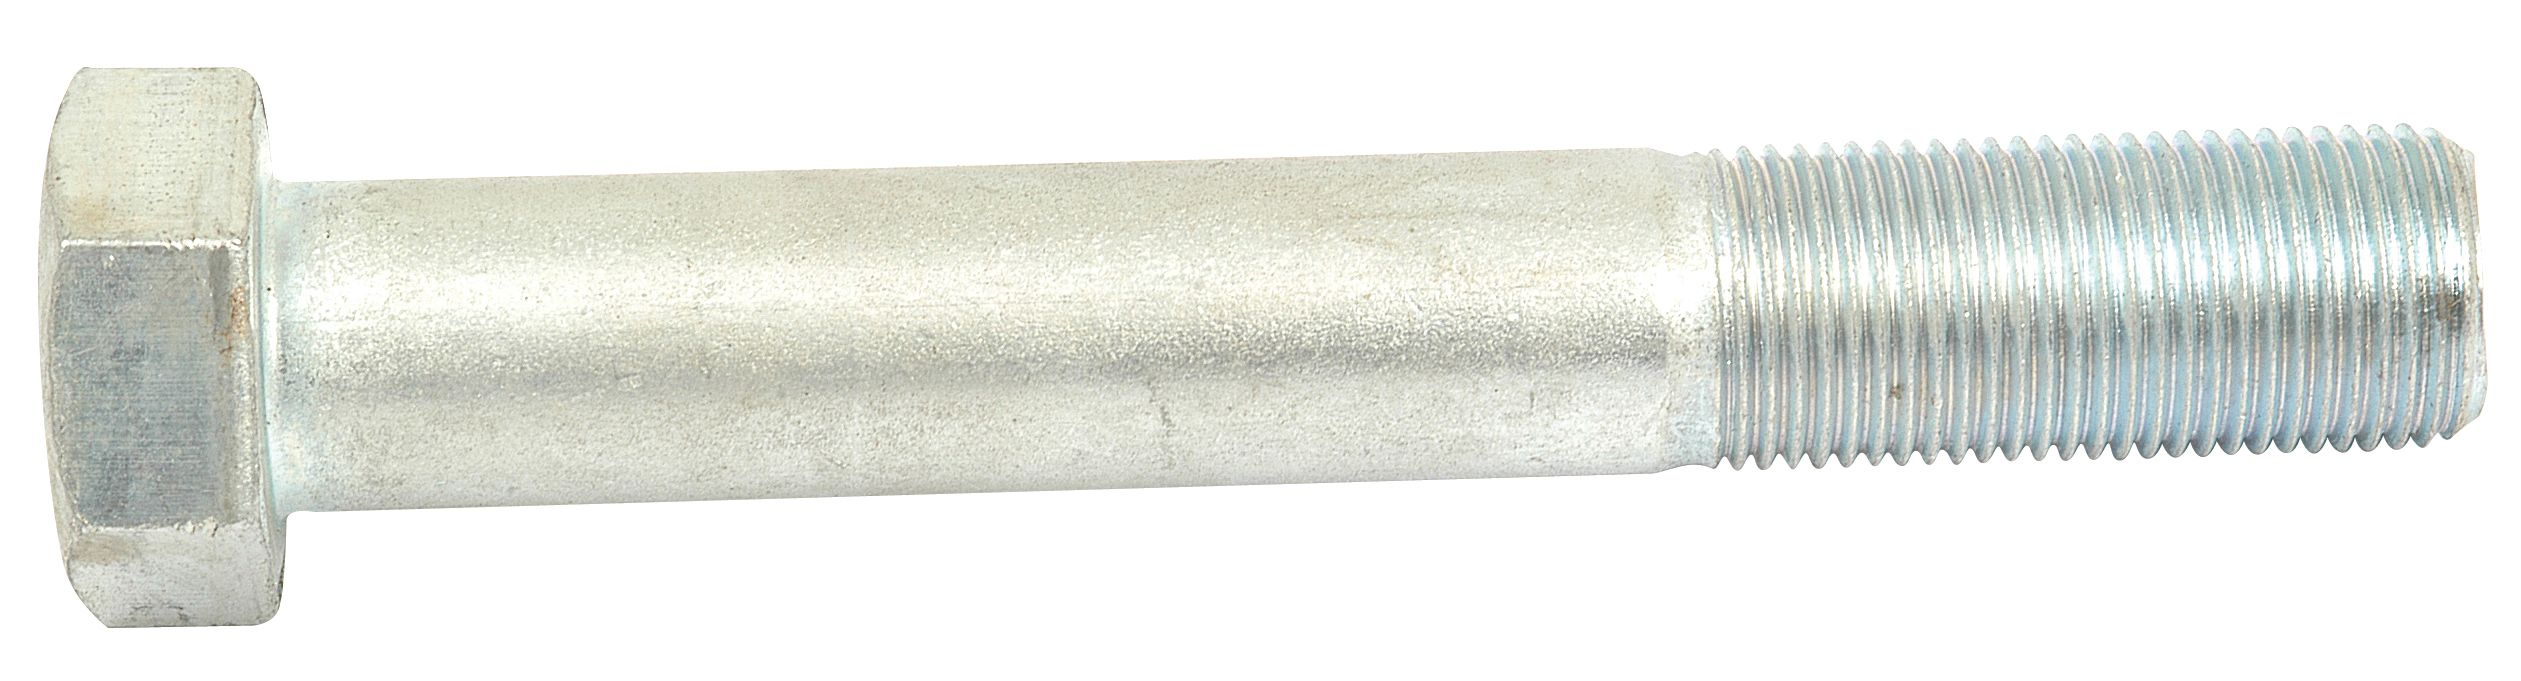 "NUFFIELD BOLT-(UNF)9/16""X3.1/2"""